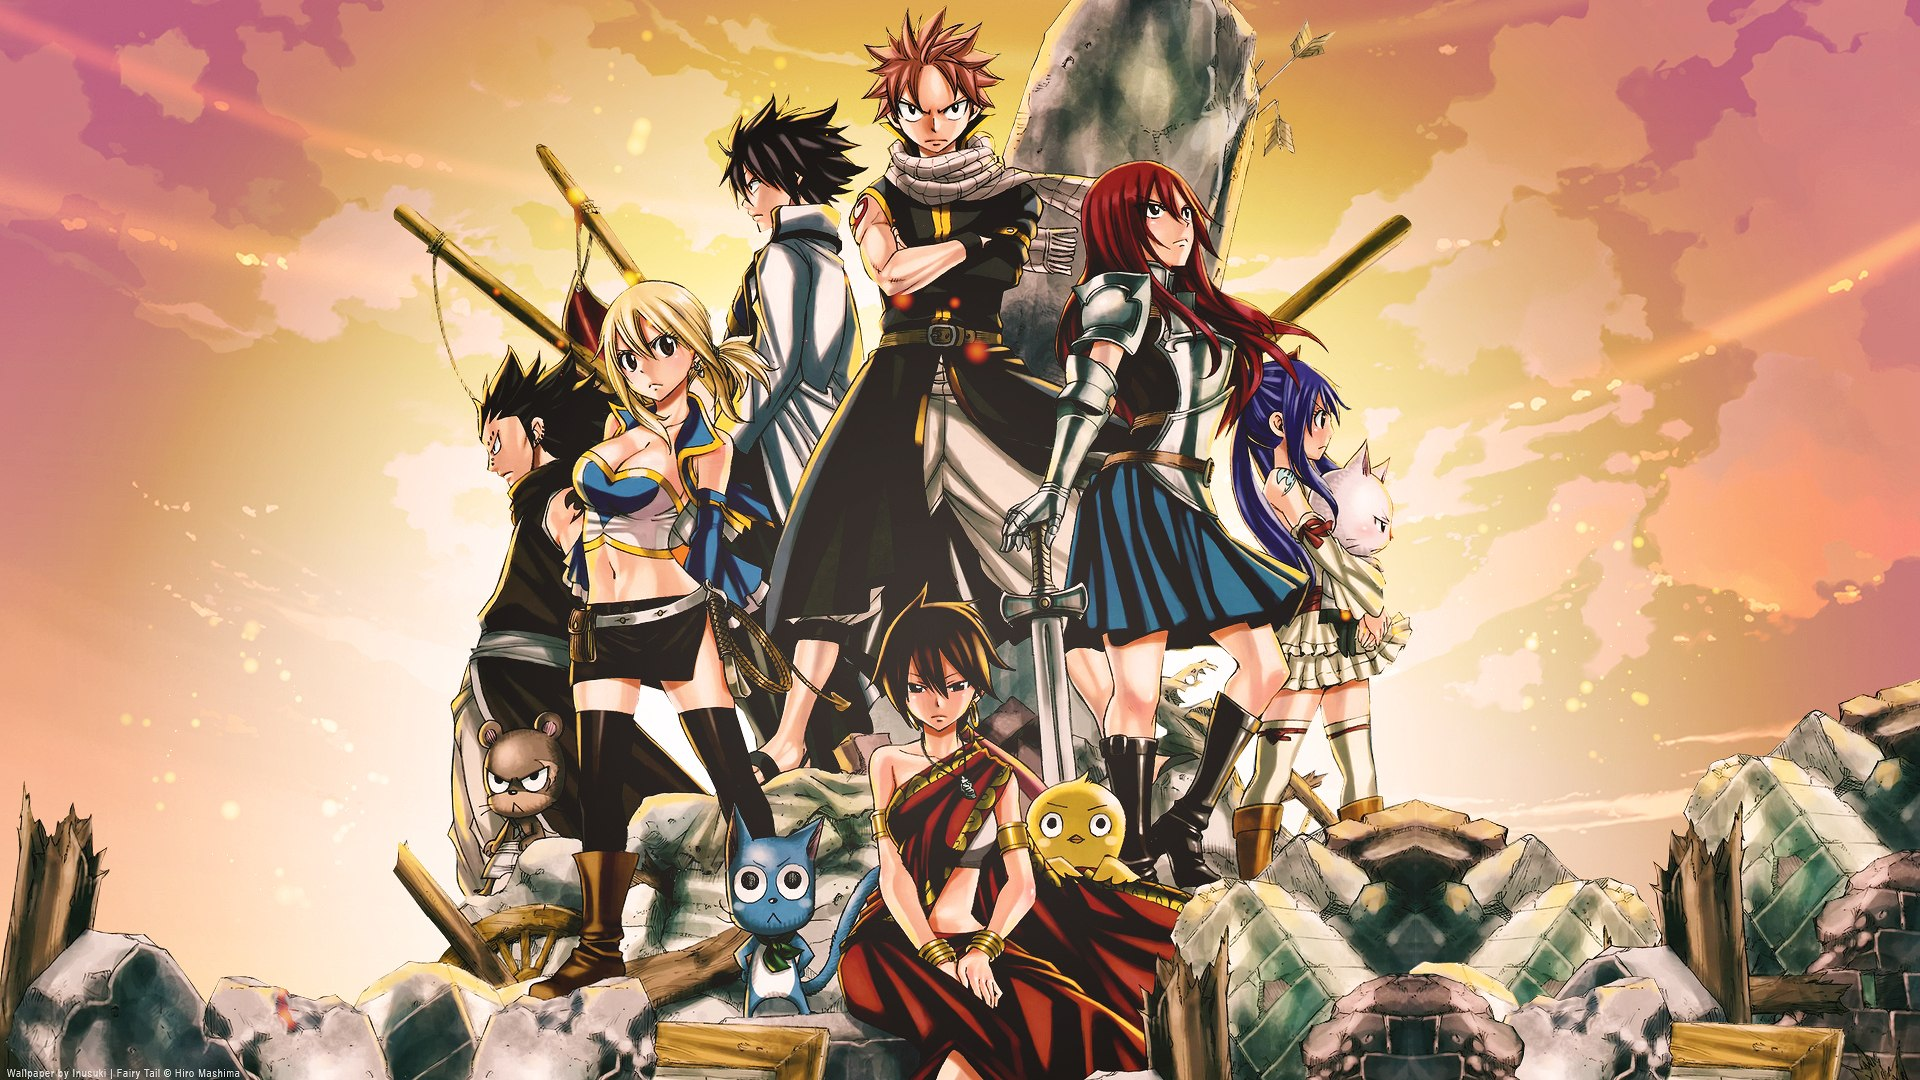 The Fairy Tail Guild Fairy Tail 1920x1080